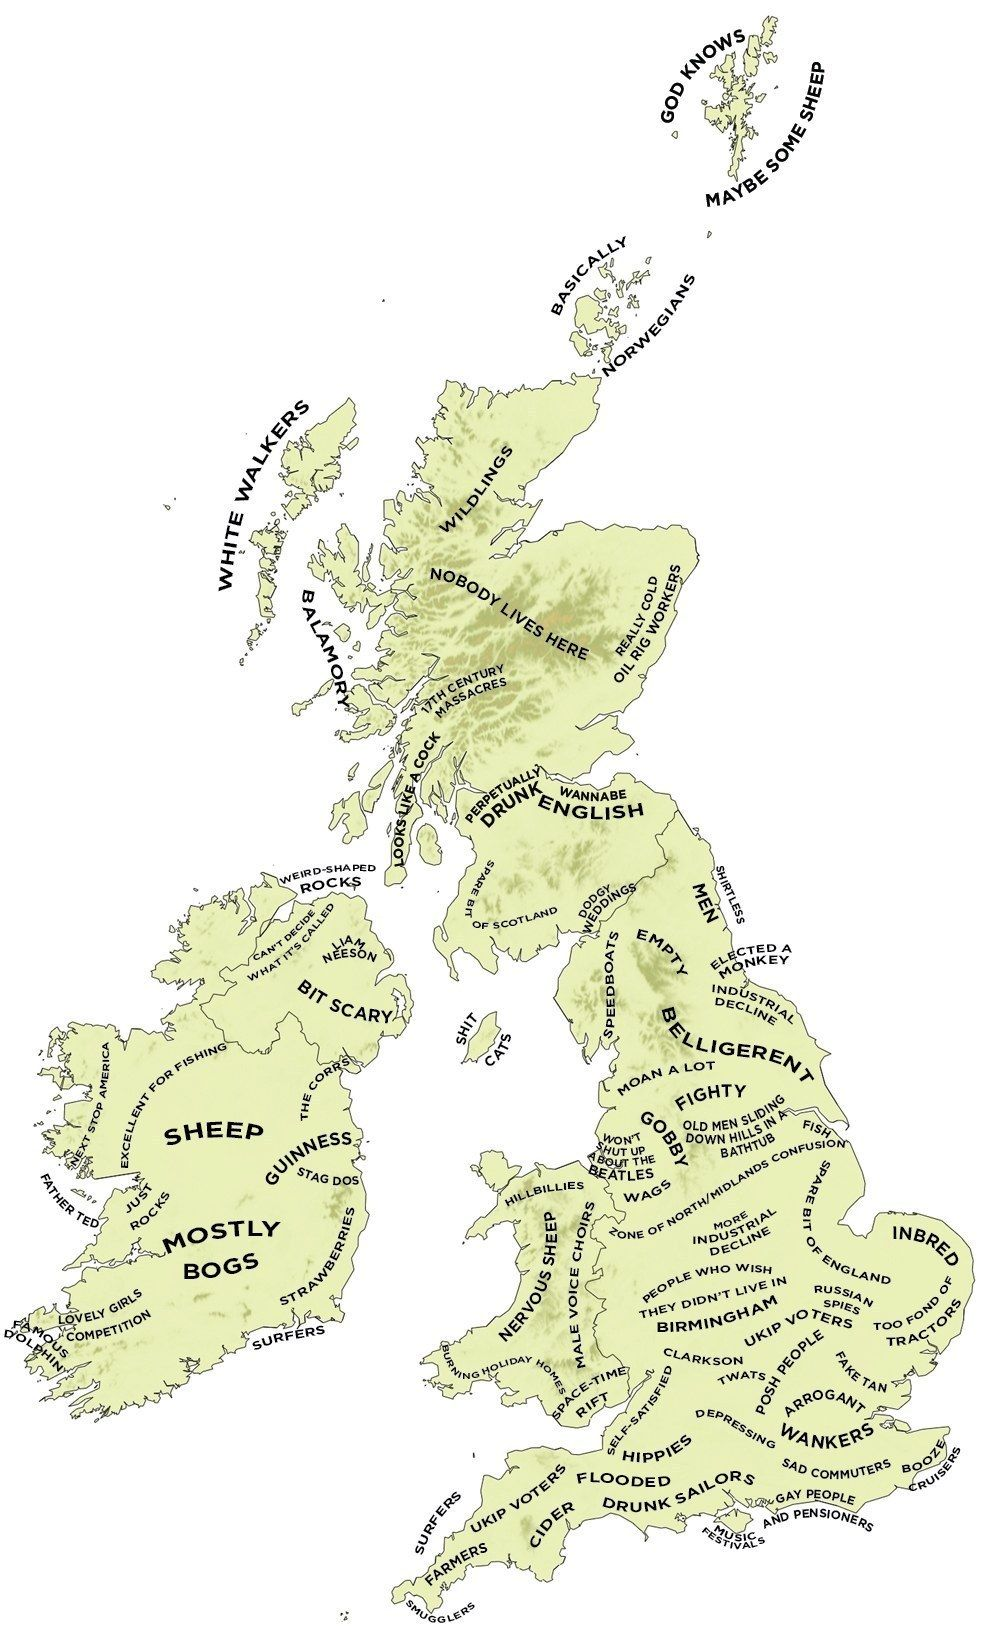 Map Of Uk Ireland.The Definitive Stereotype Map Of The Uk And Ireland Erin Go Bragh